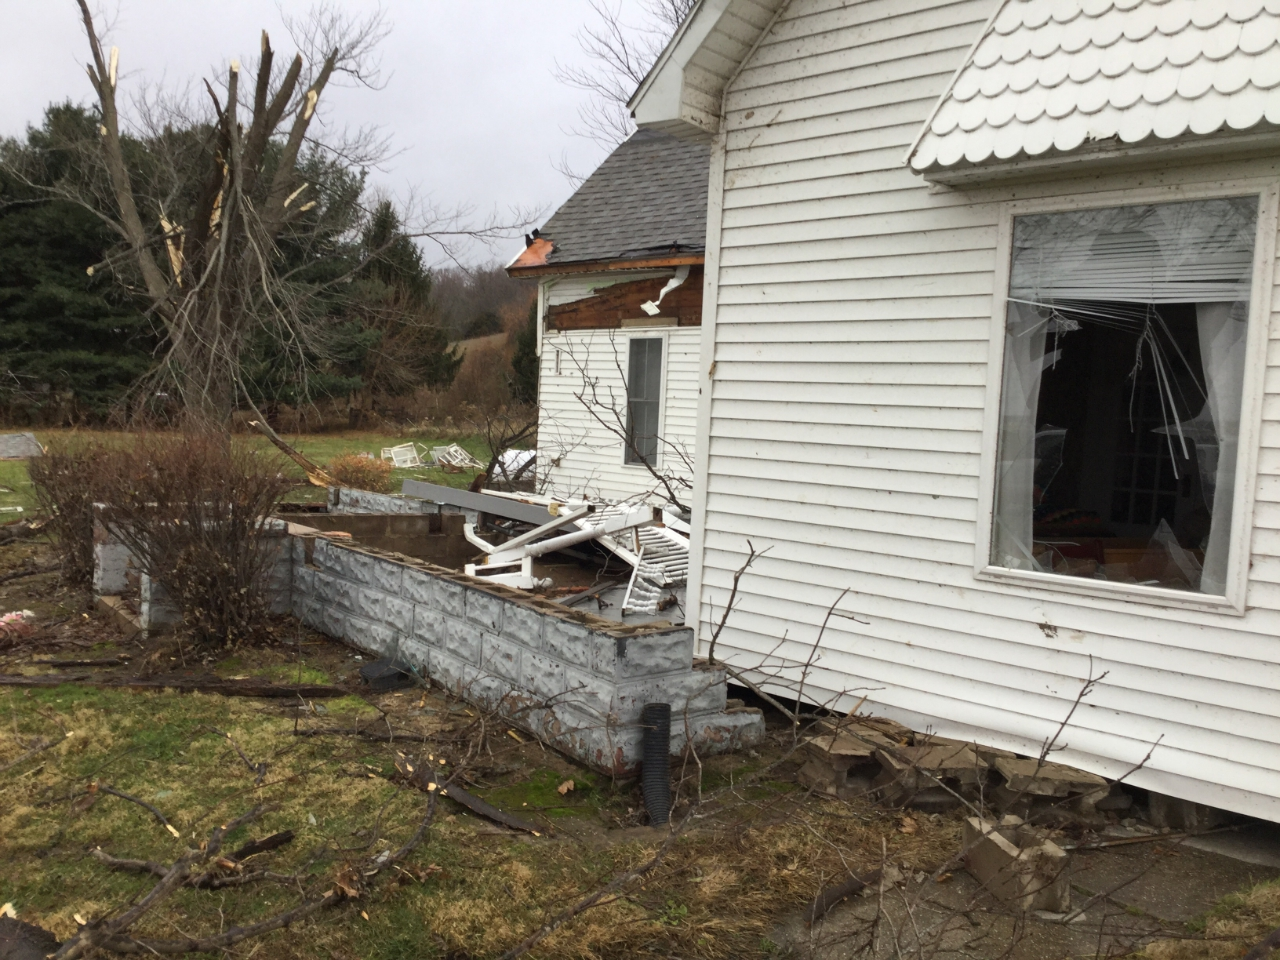 Damage near Schuyler/Fulton Co. line. NWS survey photo